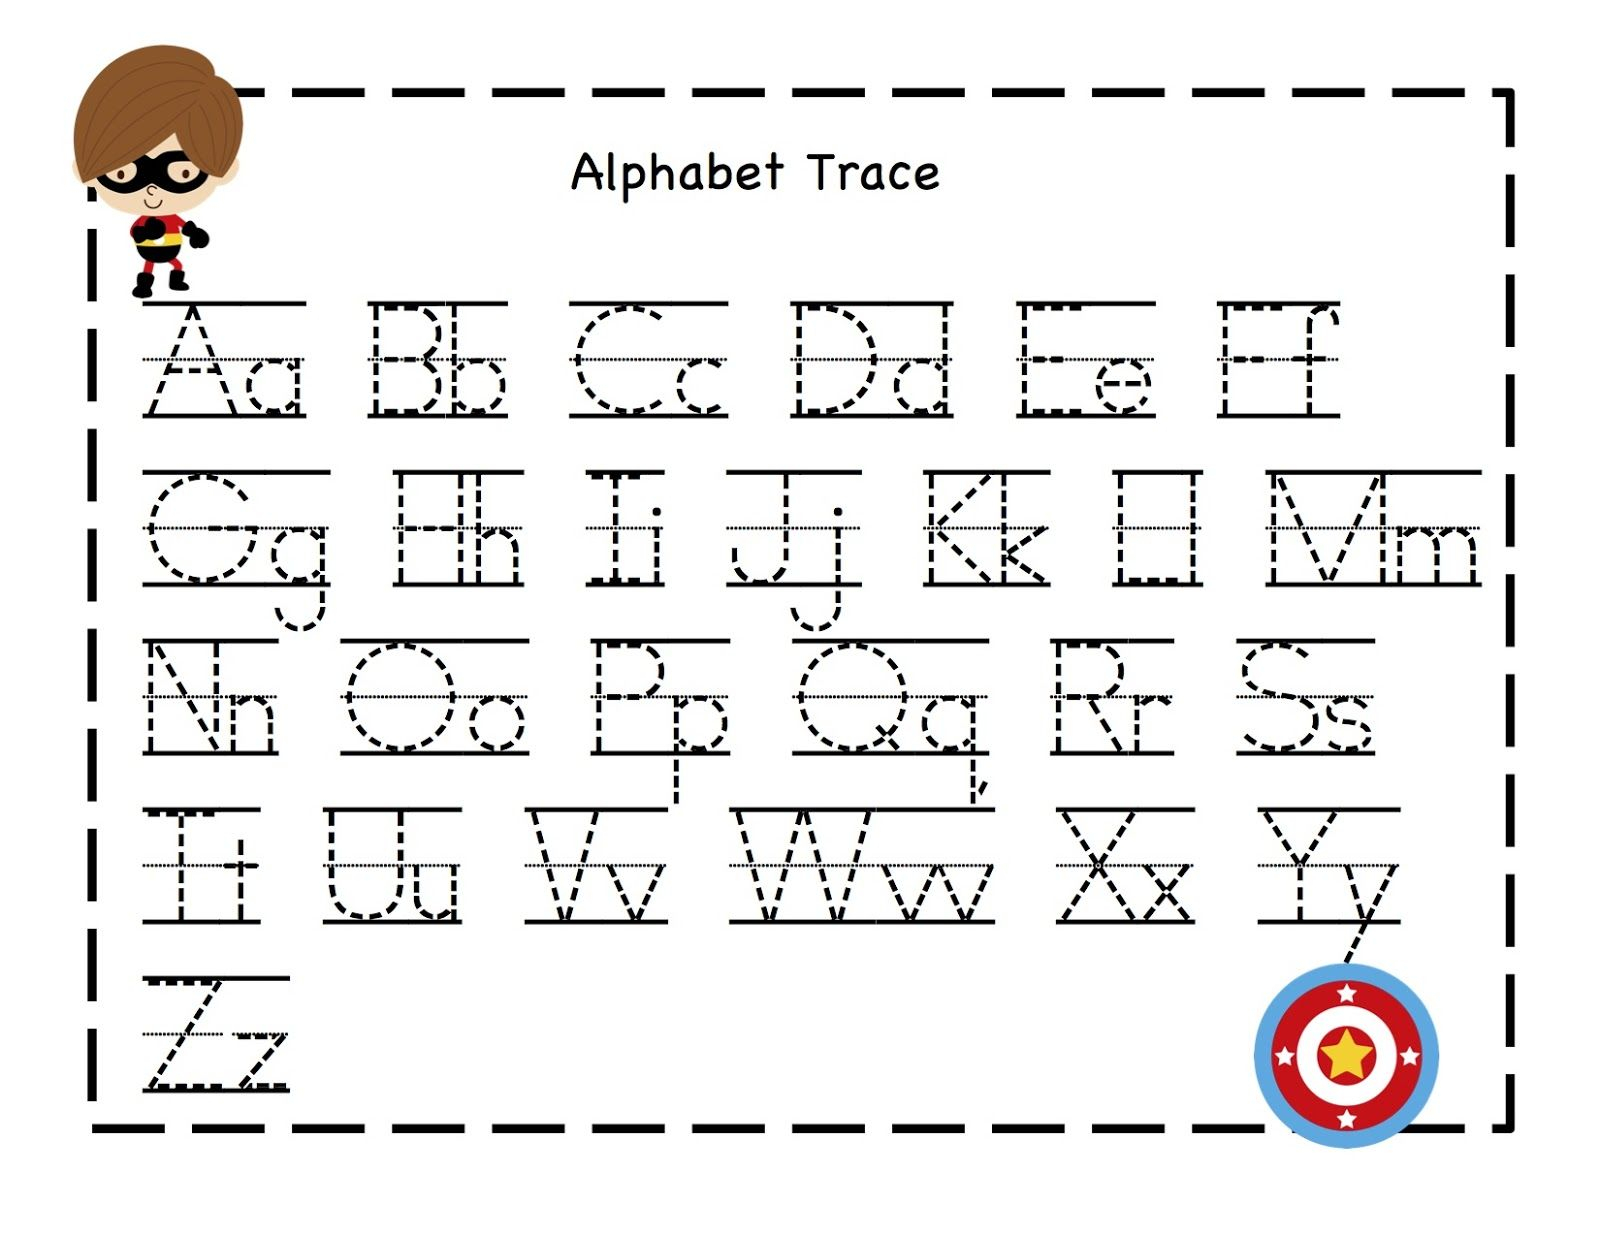 letter tracing template example-Preschool Printables abet tracing sheet from owensfamily gwyn 8-r